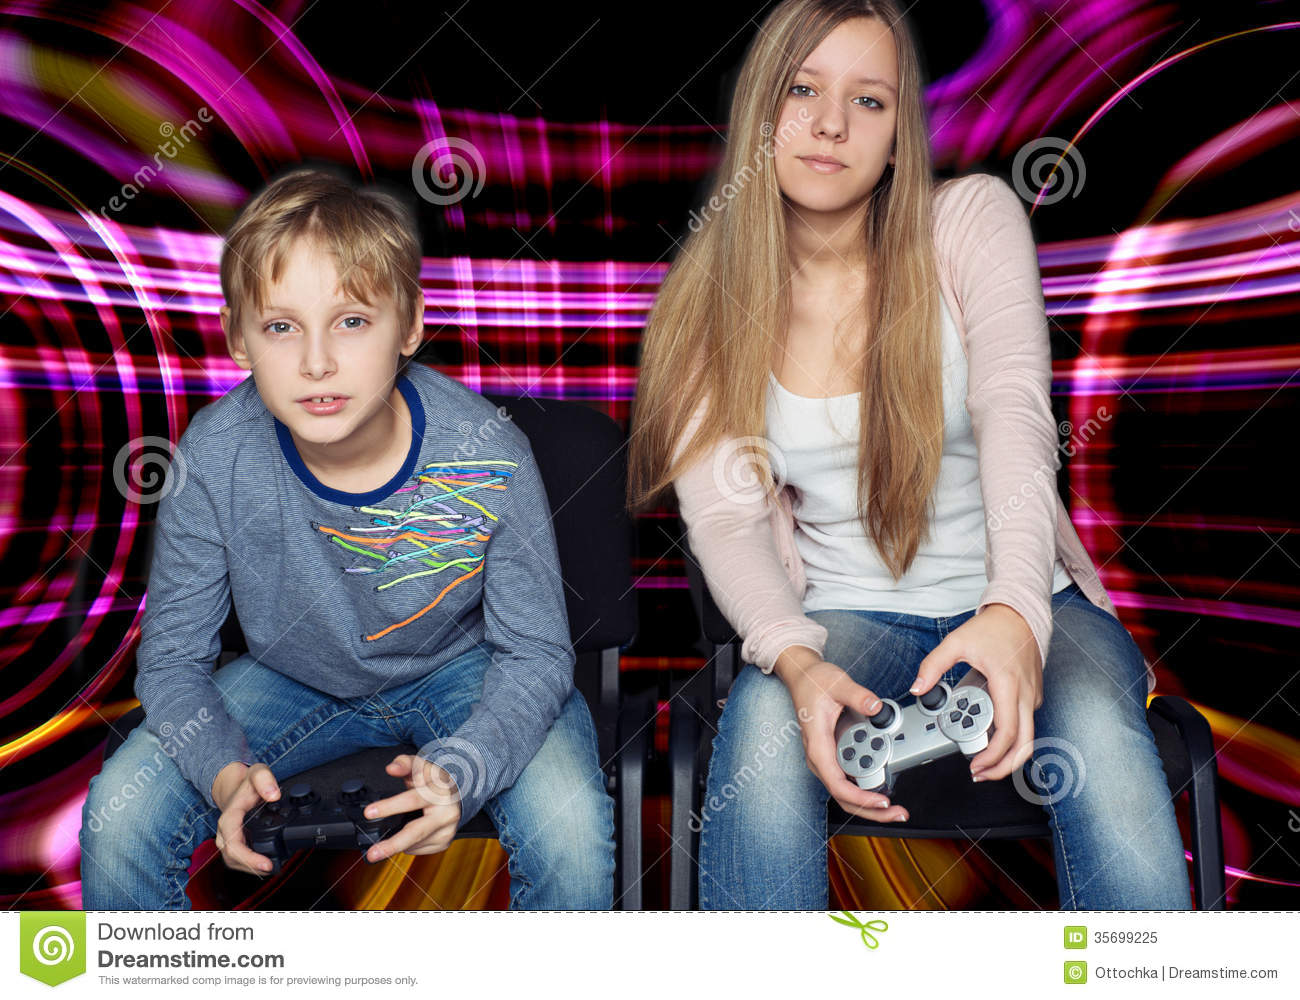 Boy And Girl Playing Video Games Stock Image - Image: 35699225